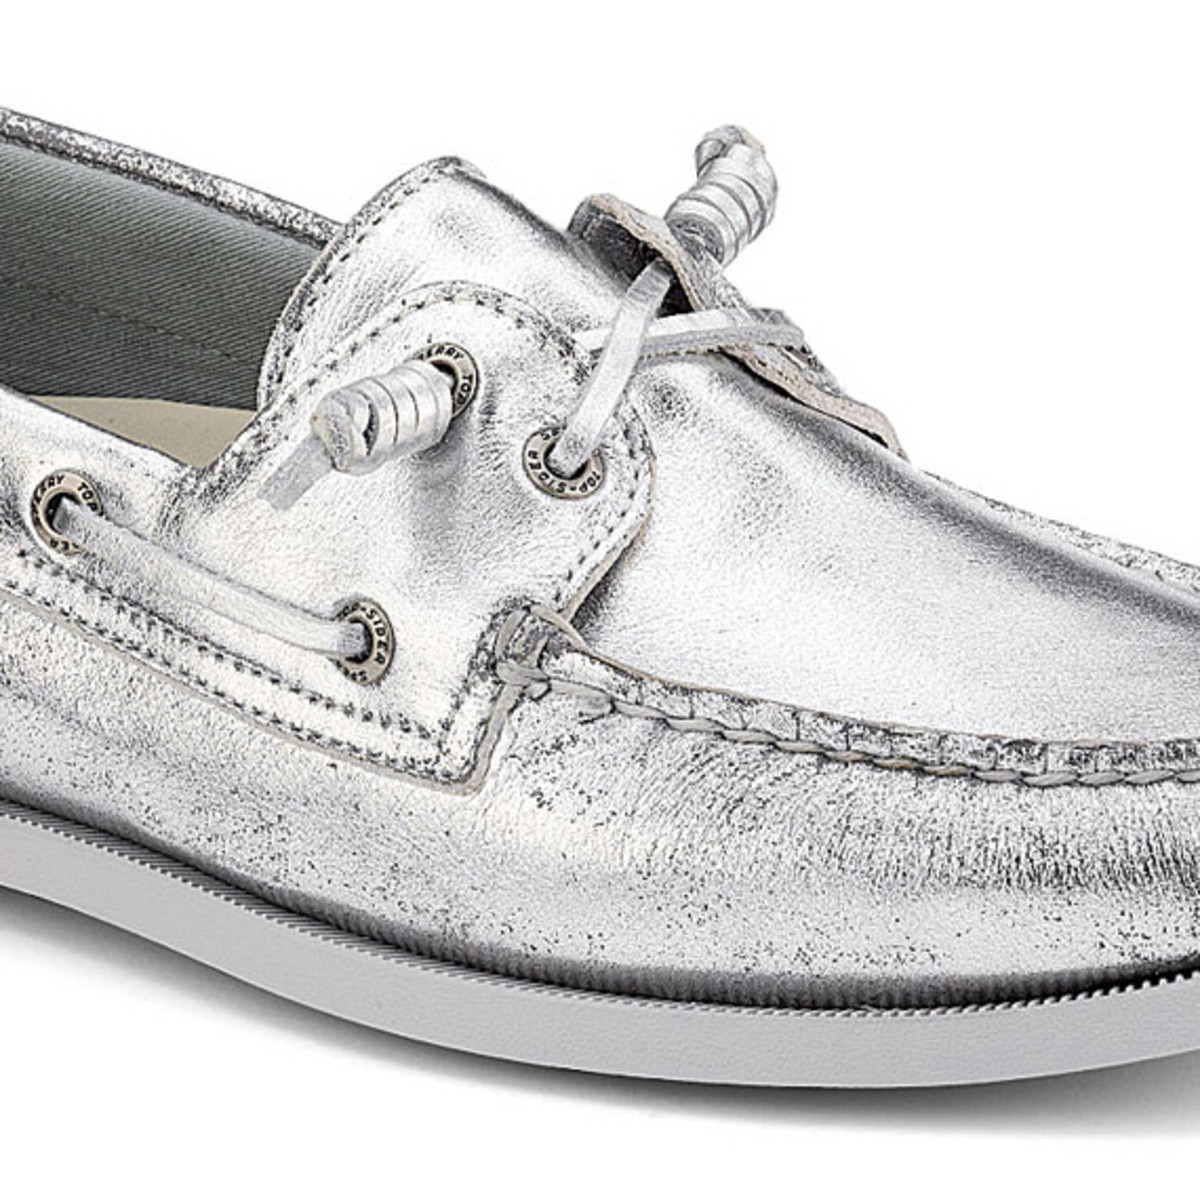 jeffrey-x-sperry-top-sider-authentic-original-barrel-lace-boat-shoes-18